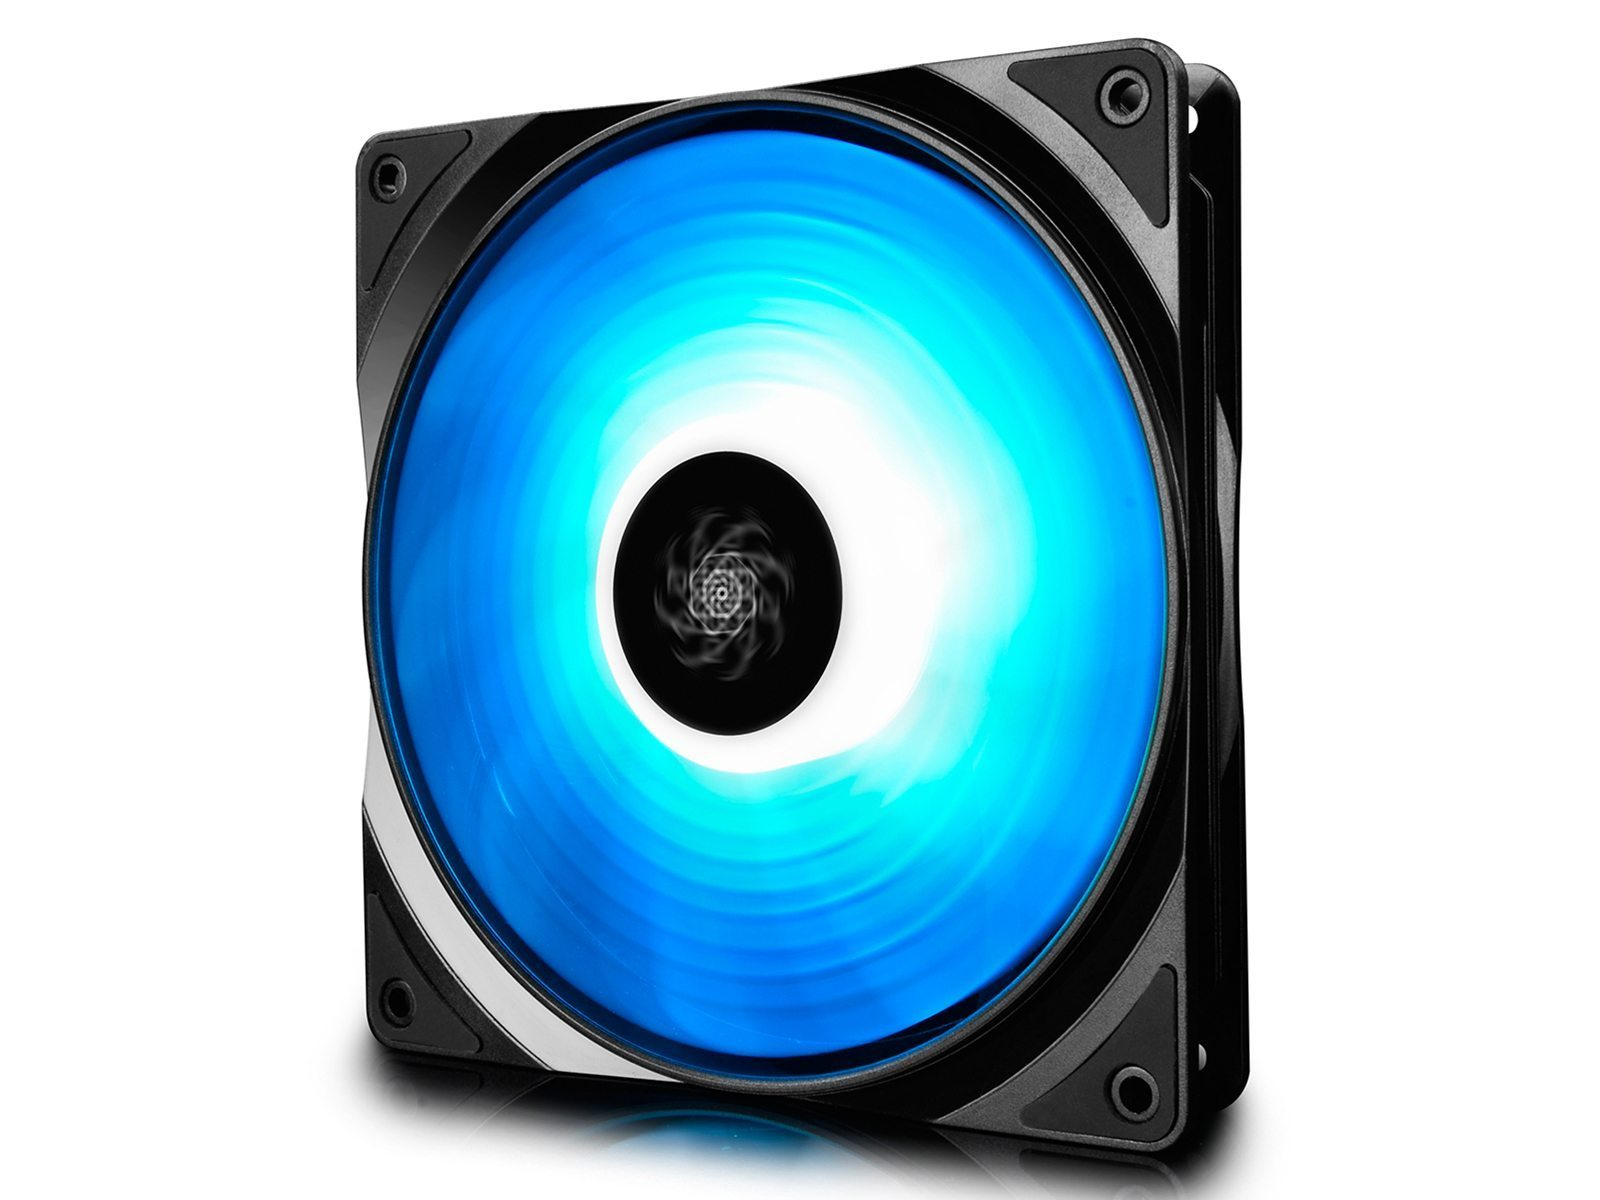 DeepCool Fan 140mm RF140 - RGB Led with controller